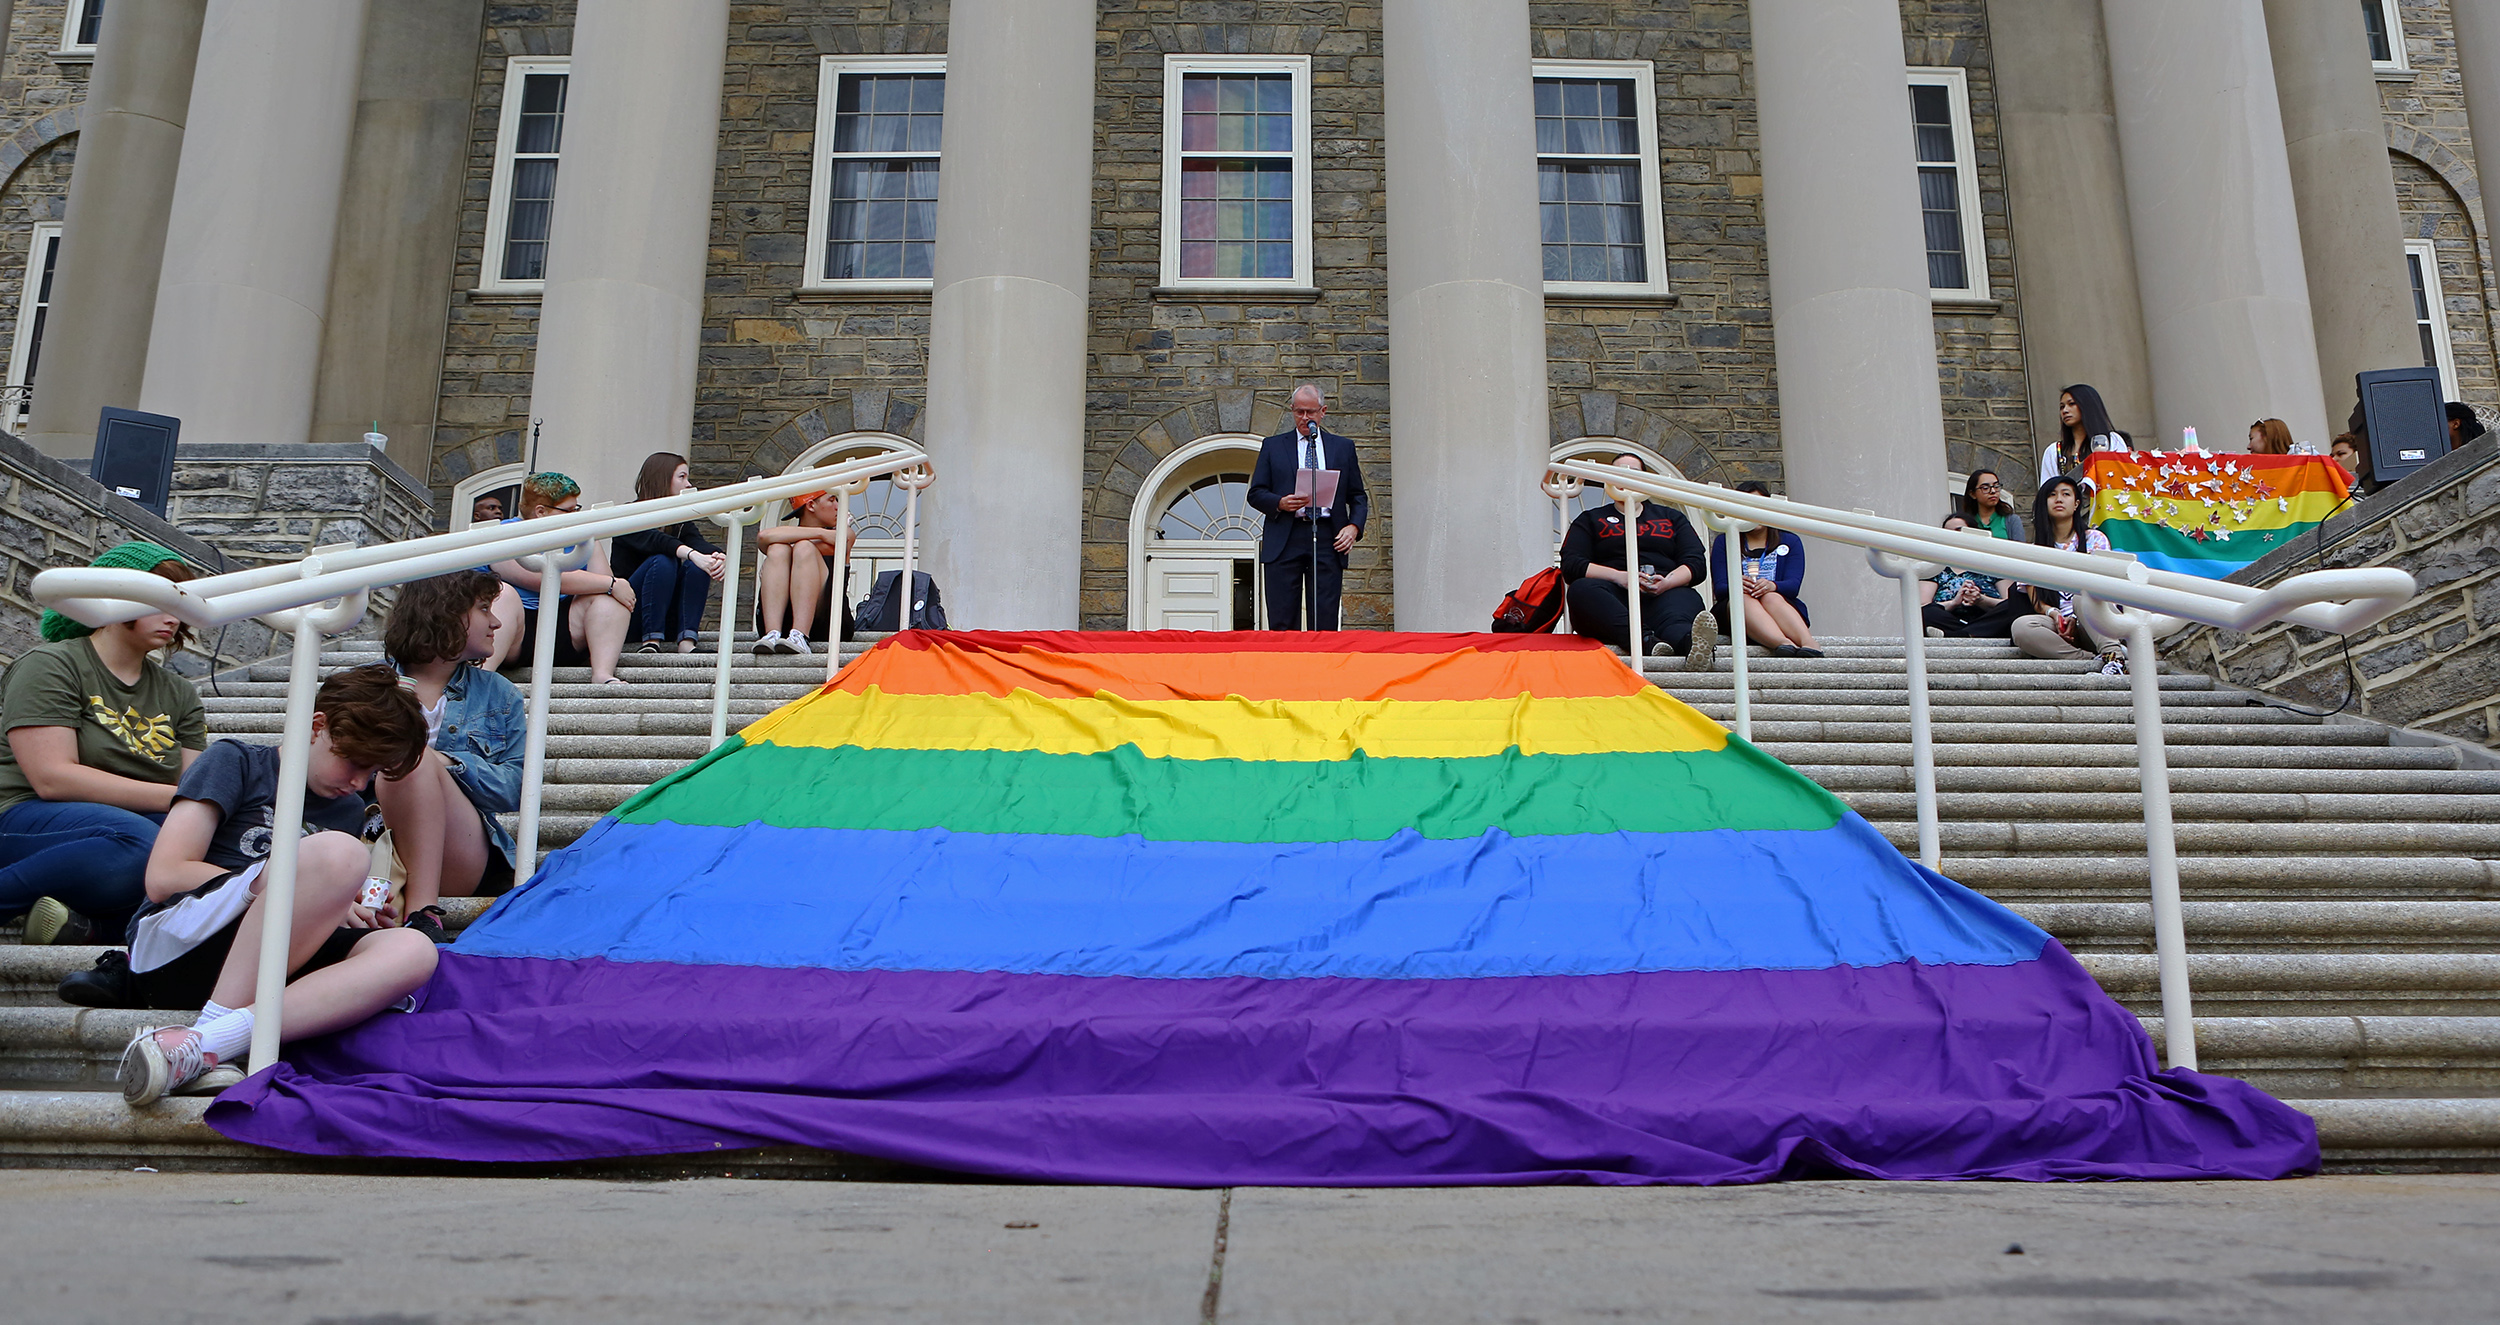 Penn State executive vice president and provost Nick Jones speaks on the steps of old main during the candle light vigil honoring the Orlando, Florida shooting victims on Monday, June 13, 2016.